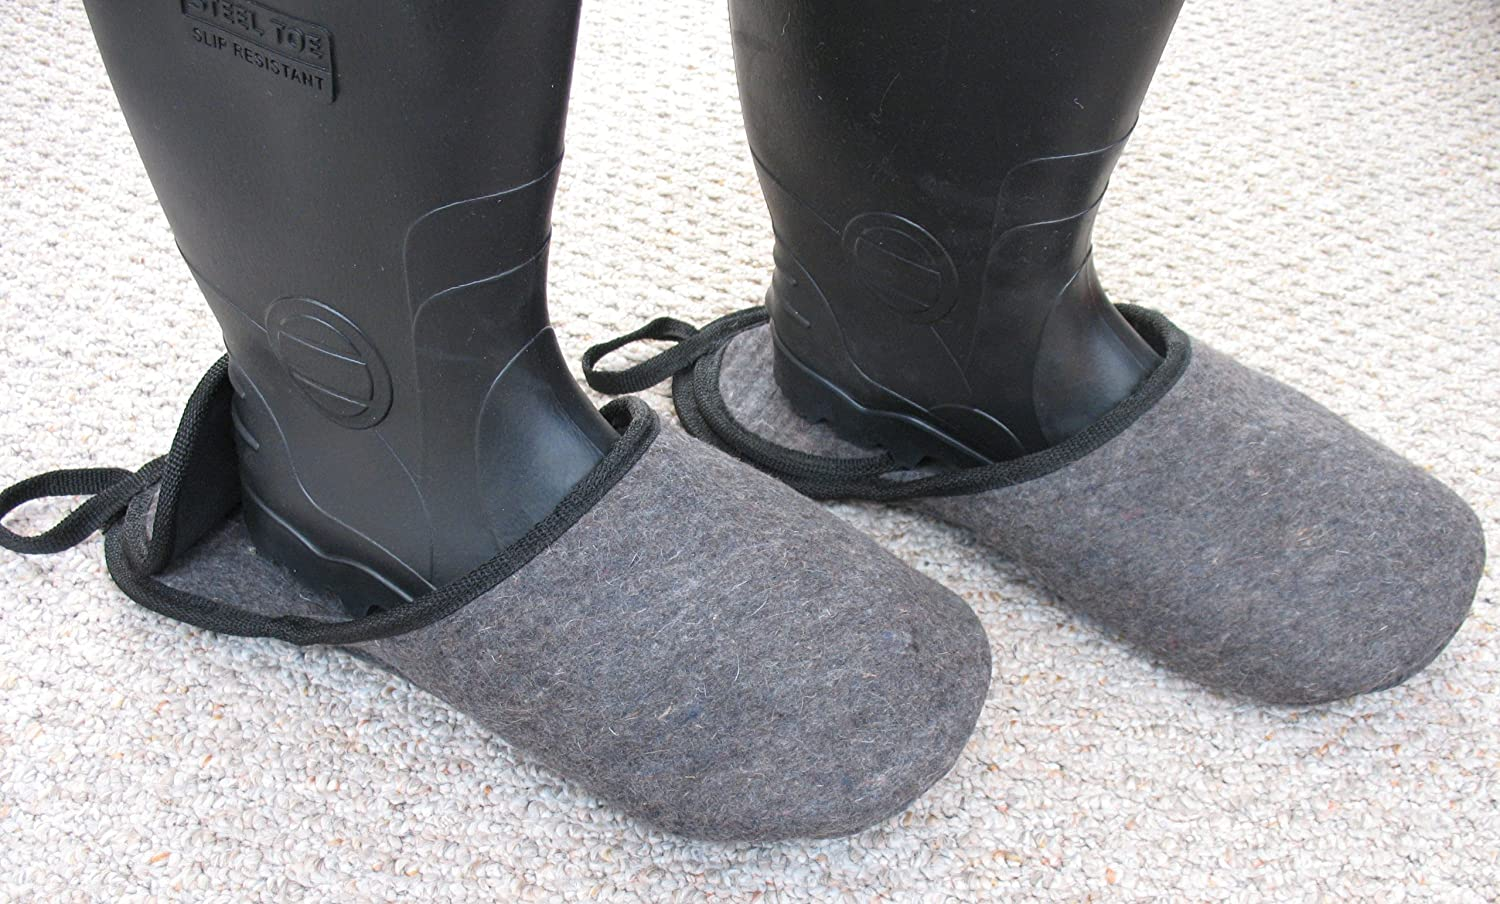 Medium Fits Mens Size 6-9 or Womans 6-10 Perfect for guests Keep your floors clean without removing your shoes Great for quick in and outs Shoes and Boots Slippers -Bigfoot Pushovers Overshoe Pullovers